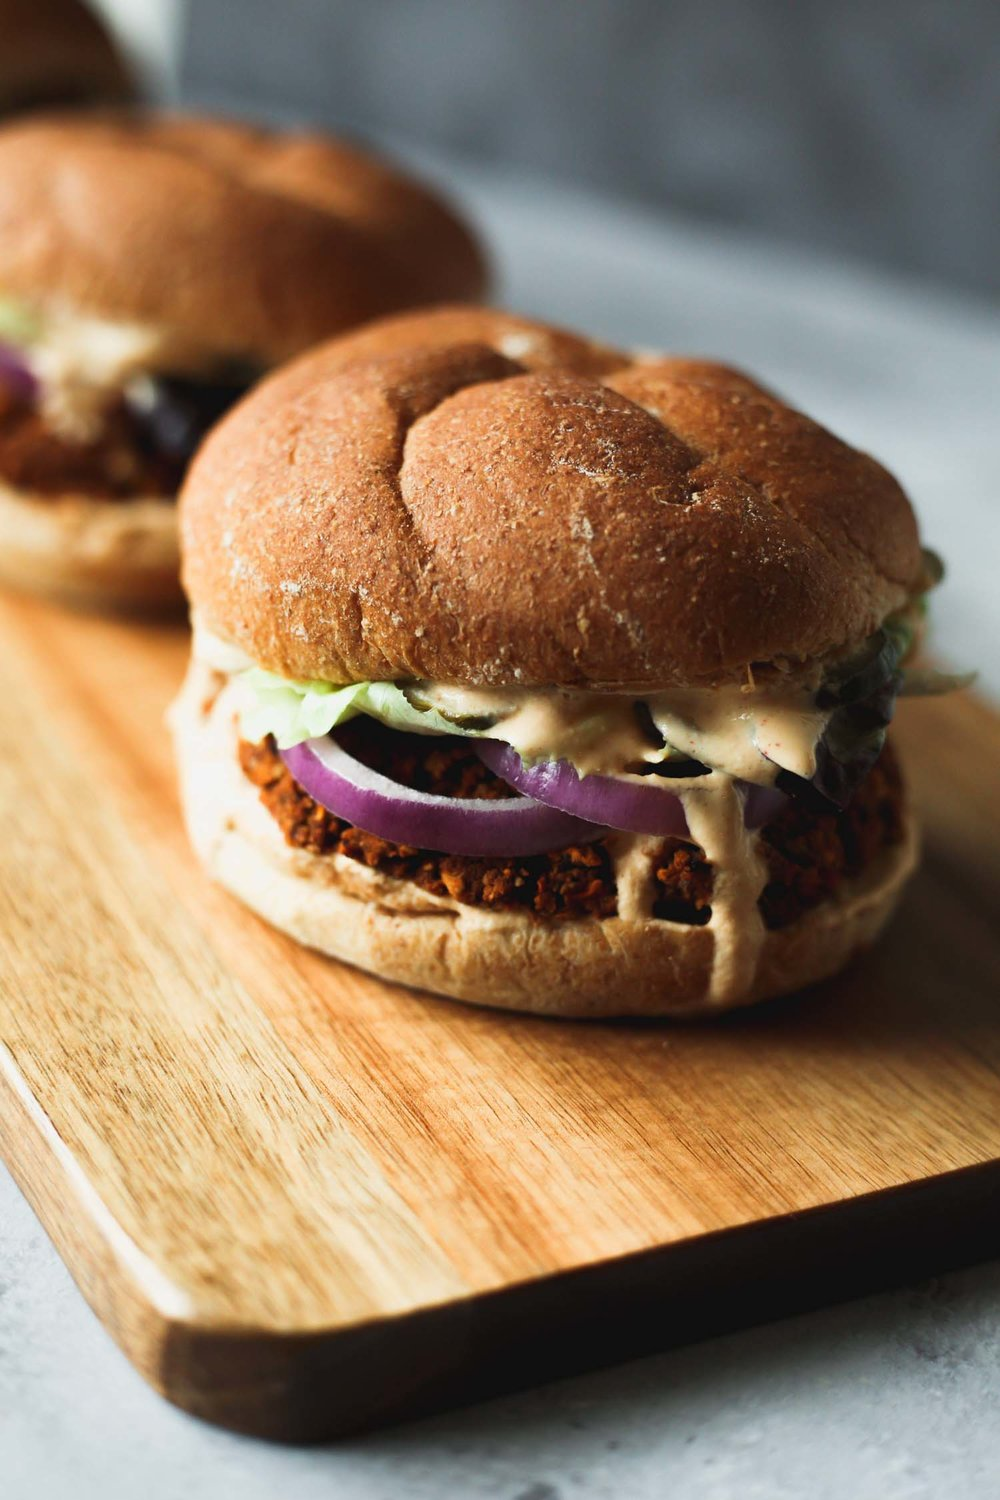 Smoky Tangy cream on Three-Bean Chili Burgers from the cookbook, Vegan Burgers and Burritos by Sophia DeSantis. Photo by Kari of Beautiful Ingredient.